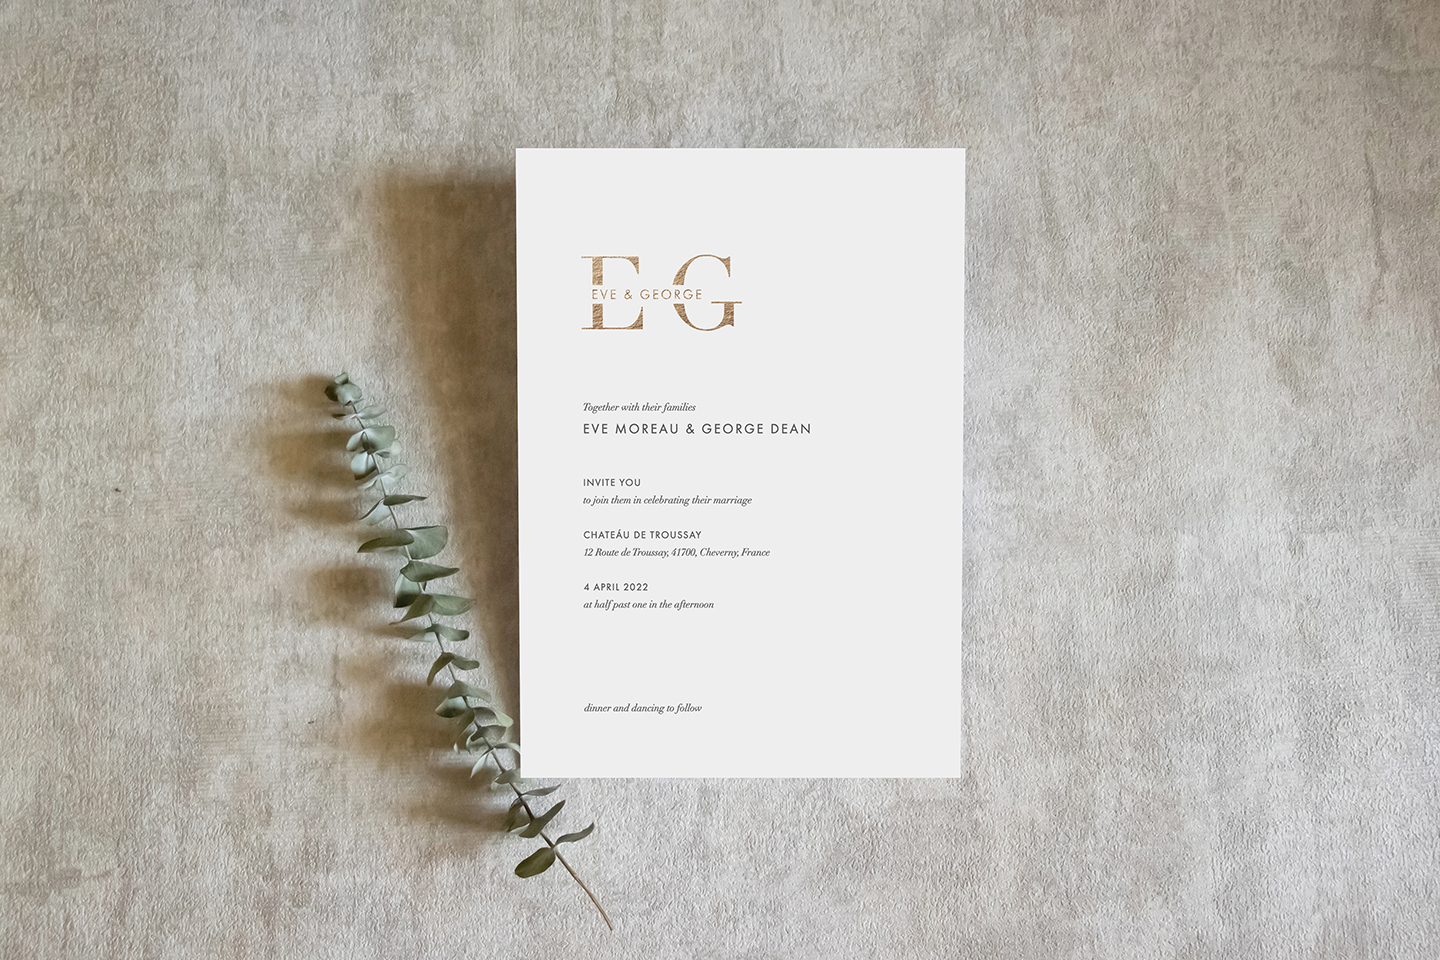 Monogram Wedding Invitations | Top Wedding Stationery Trends 2020 | Foil Invite Company Blog